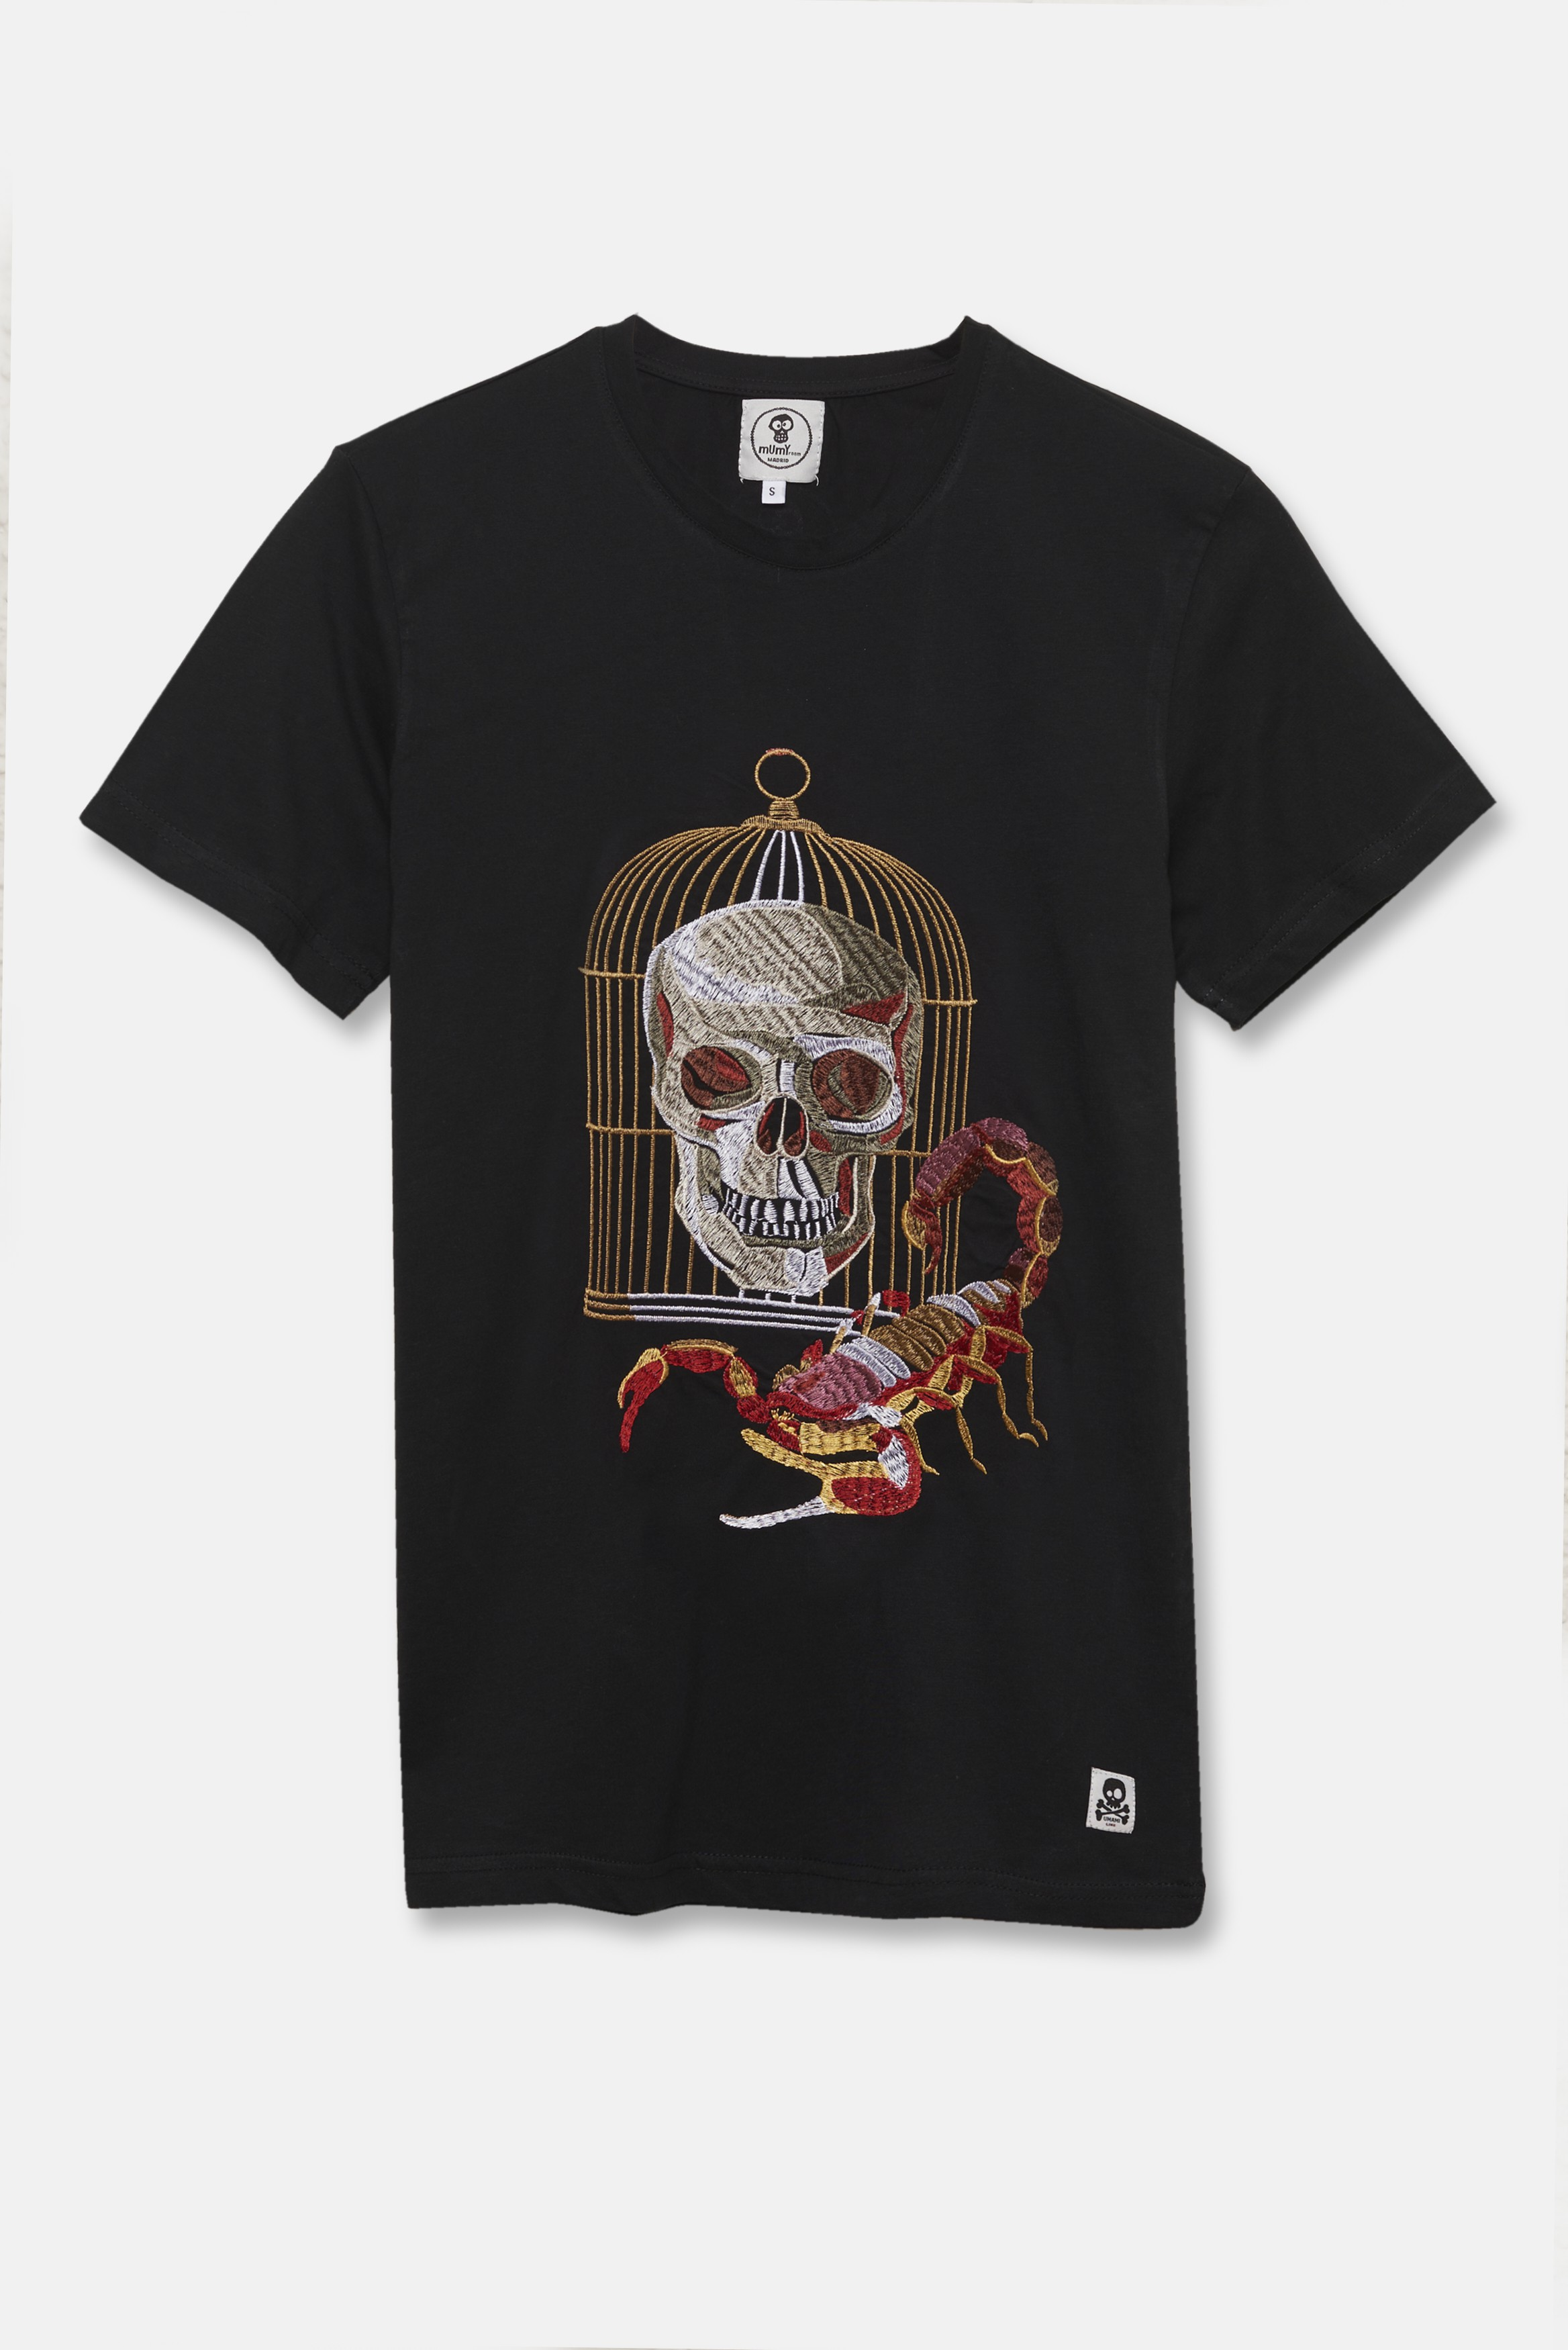 ADULT´S EMBROIDERED T-SHIRT SKULL IN A CAGE IN BLACK